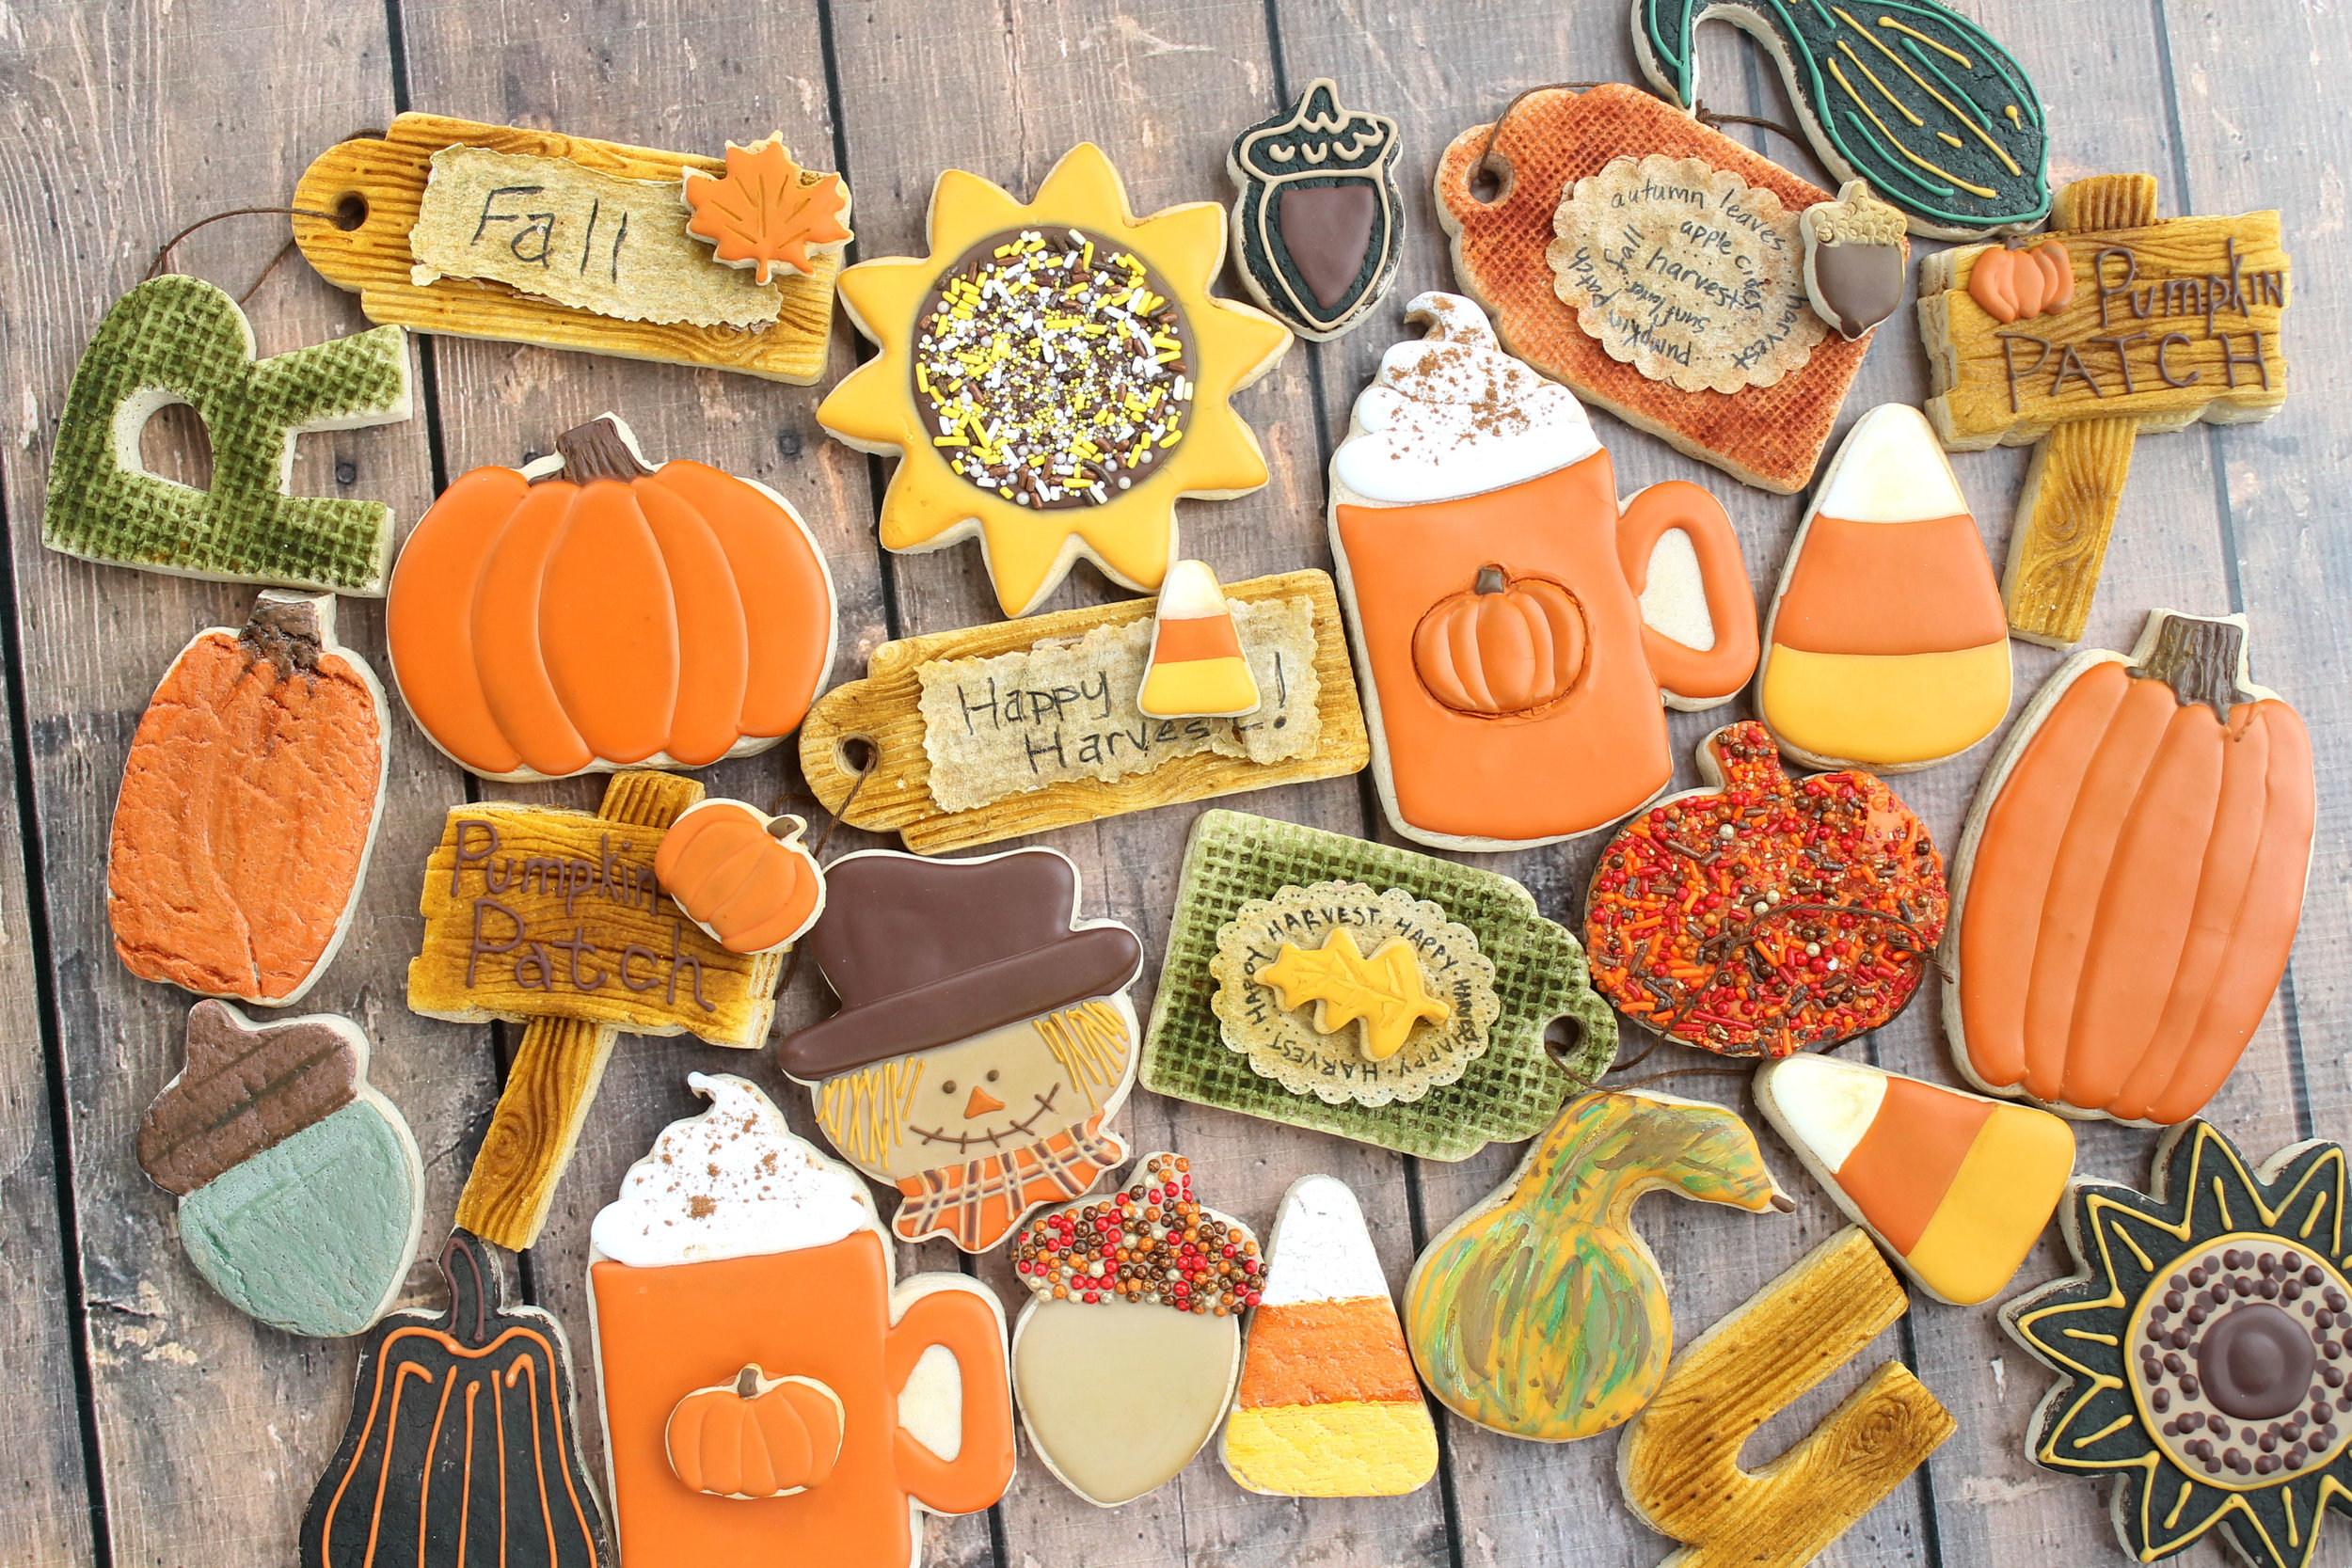 Happy Harvest Decorated Cookie Collection